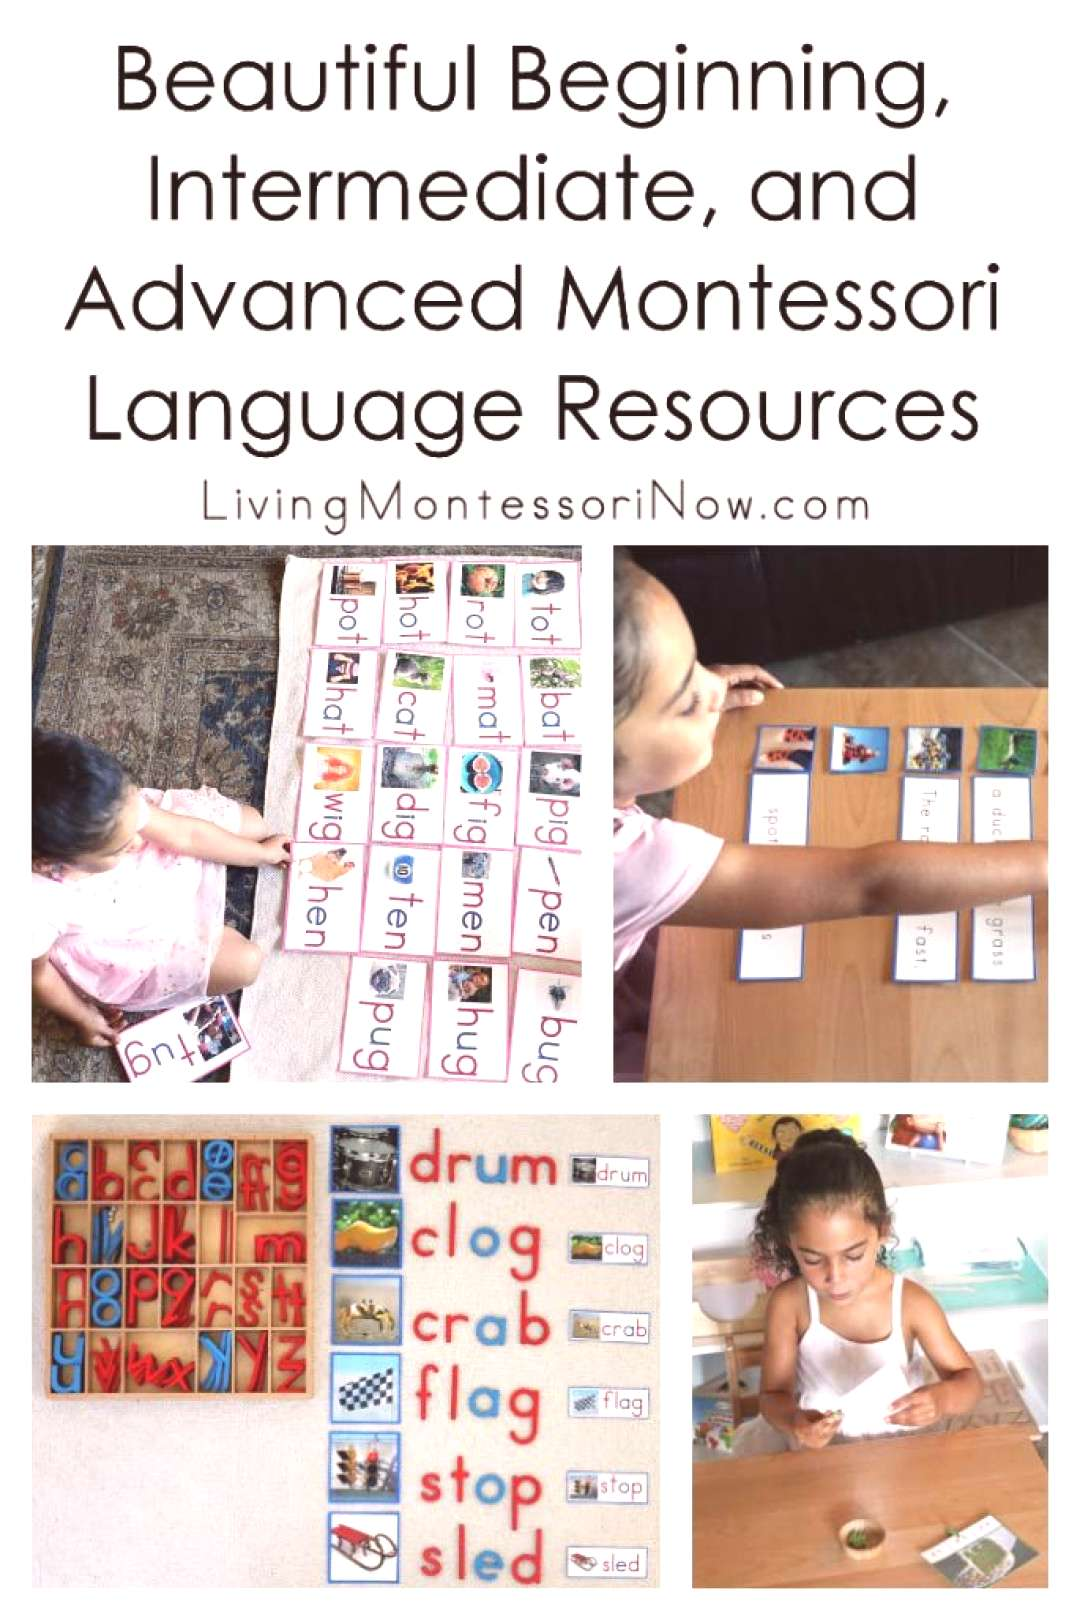 Youll find Montessori language resources here for beginning, intermediate, and advanced language,